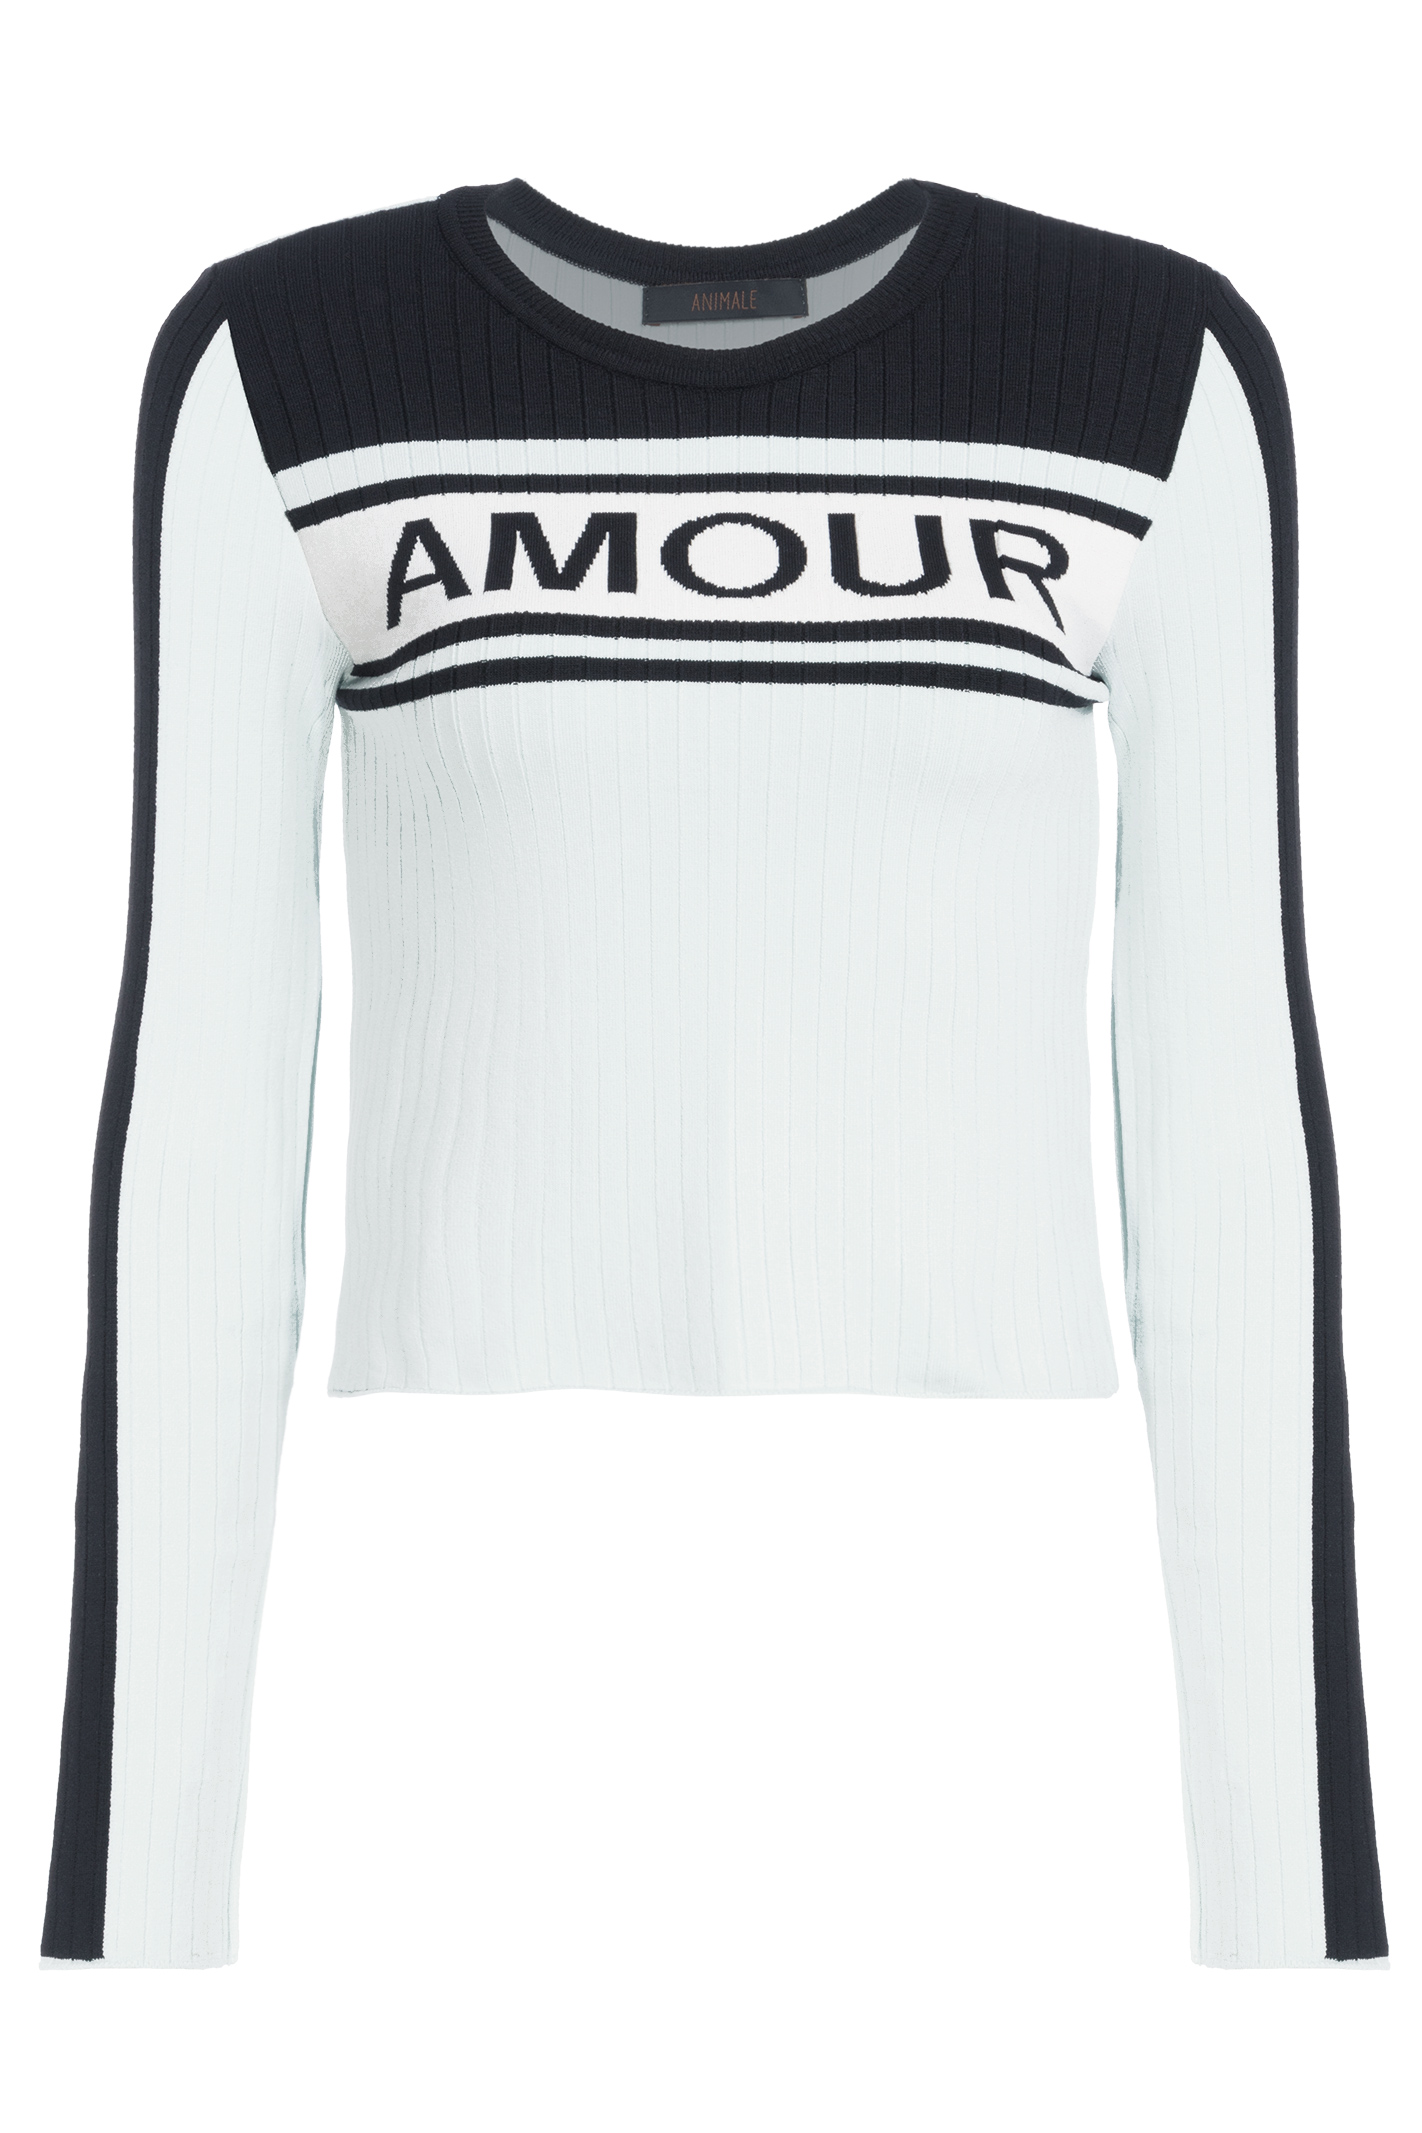 Tr Cropped Amour